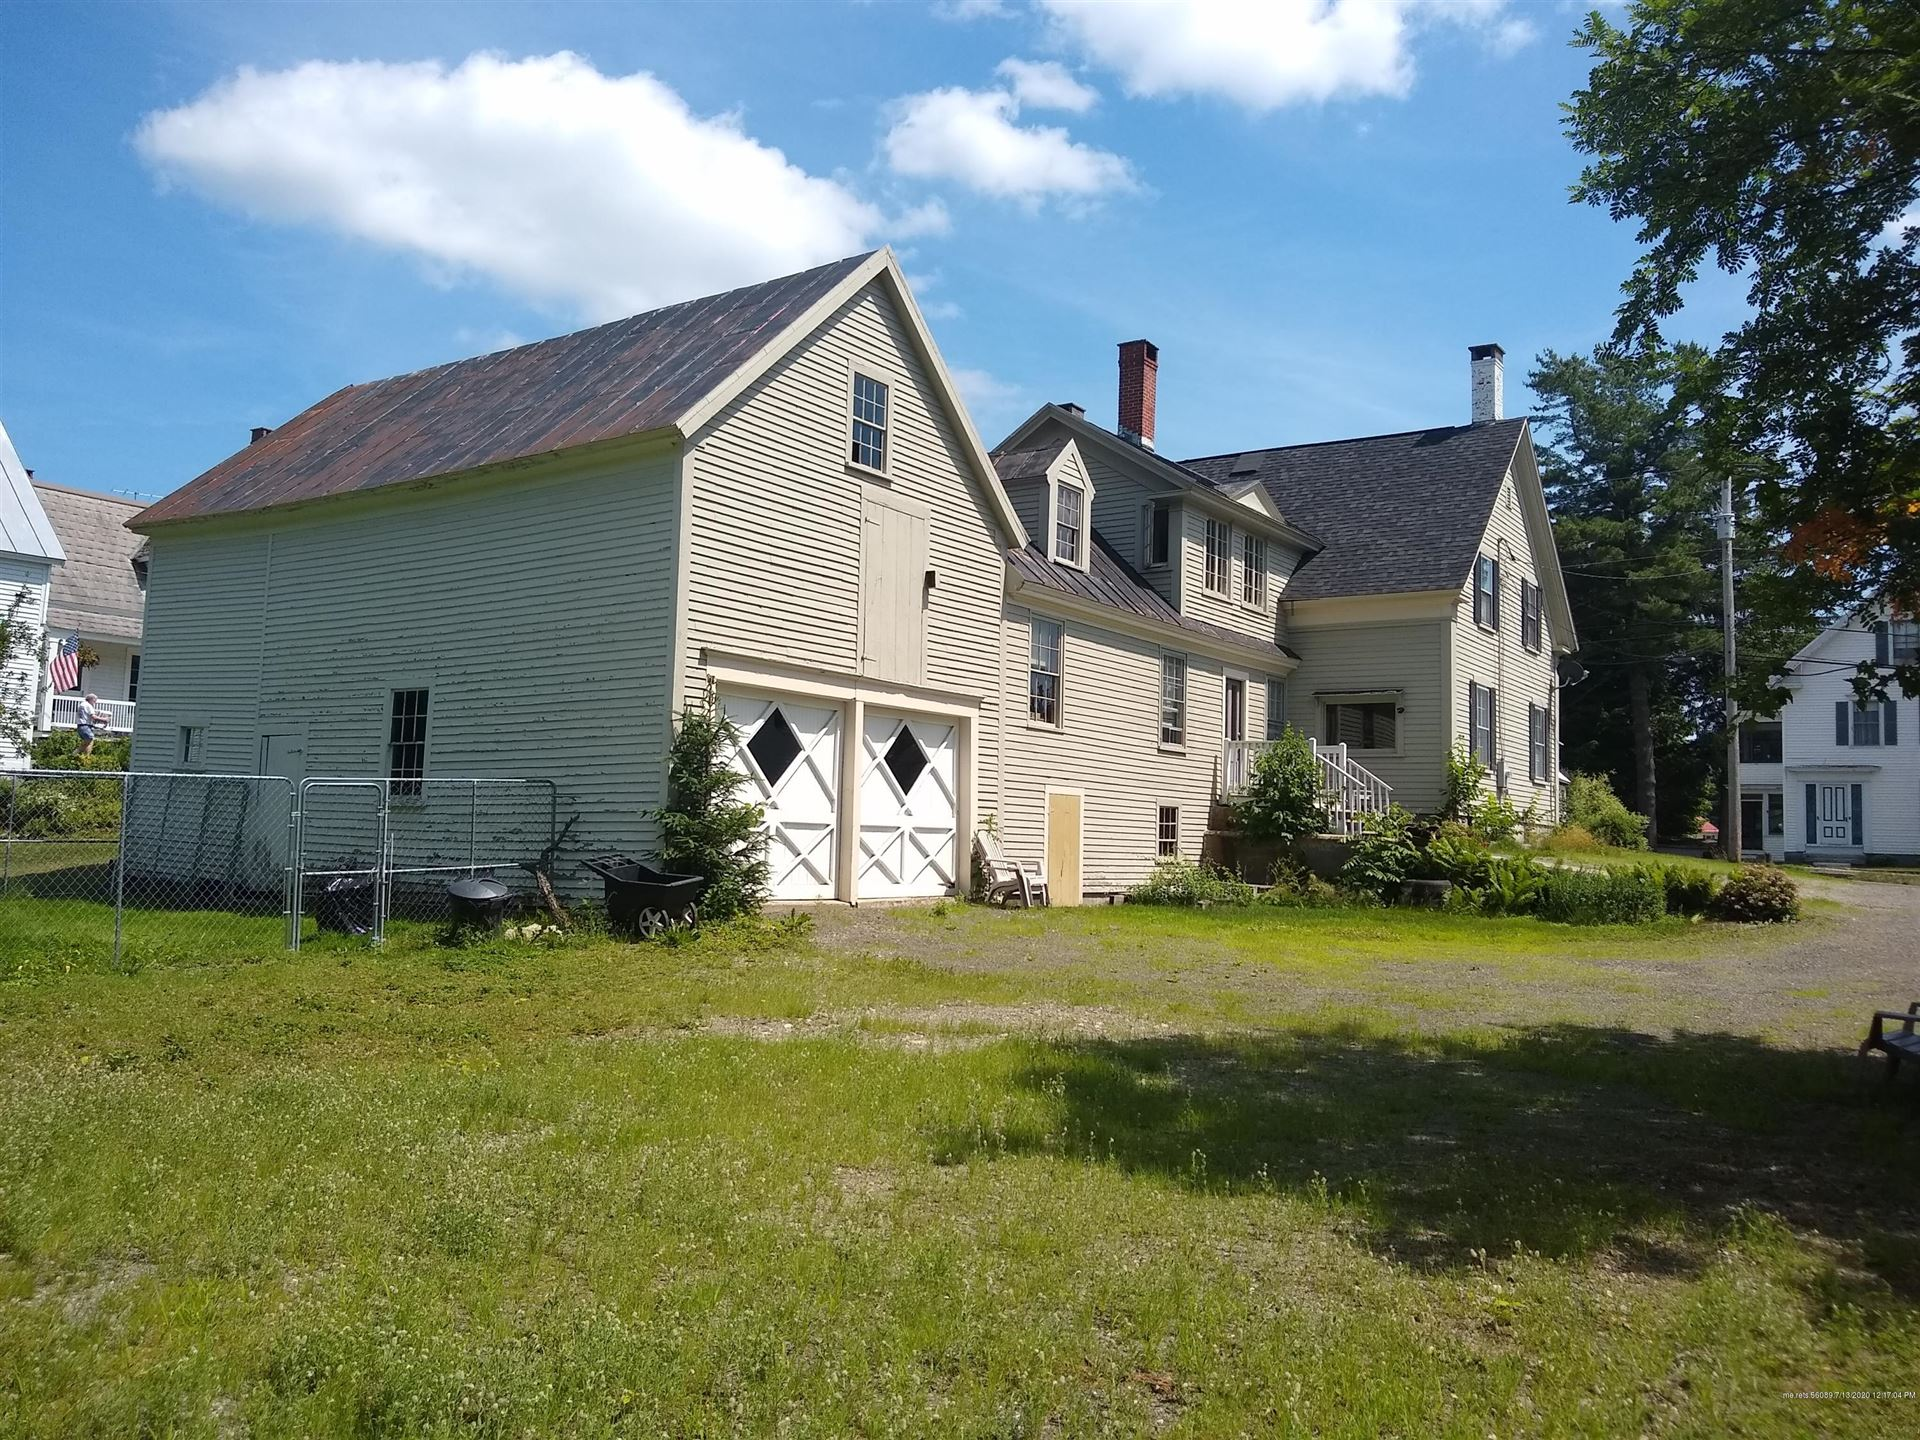 Photo of 114 Perham Street, Farmington, ME 04938 (MLS # 1460004)